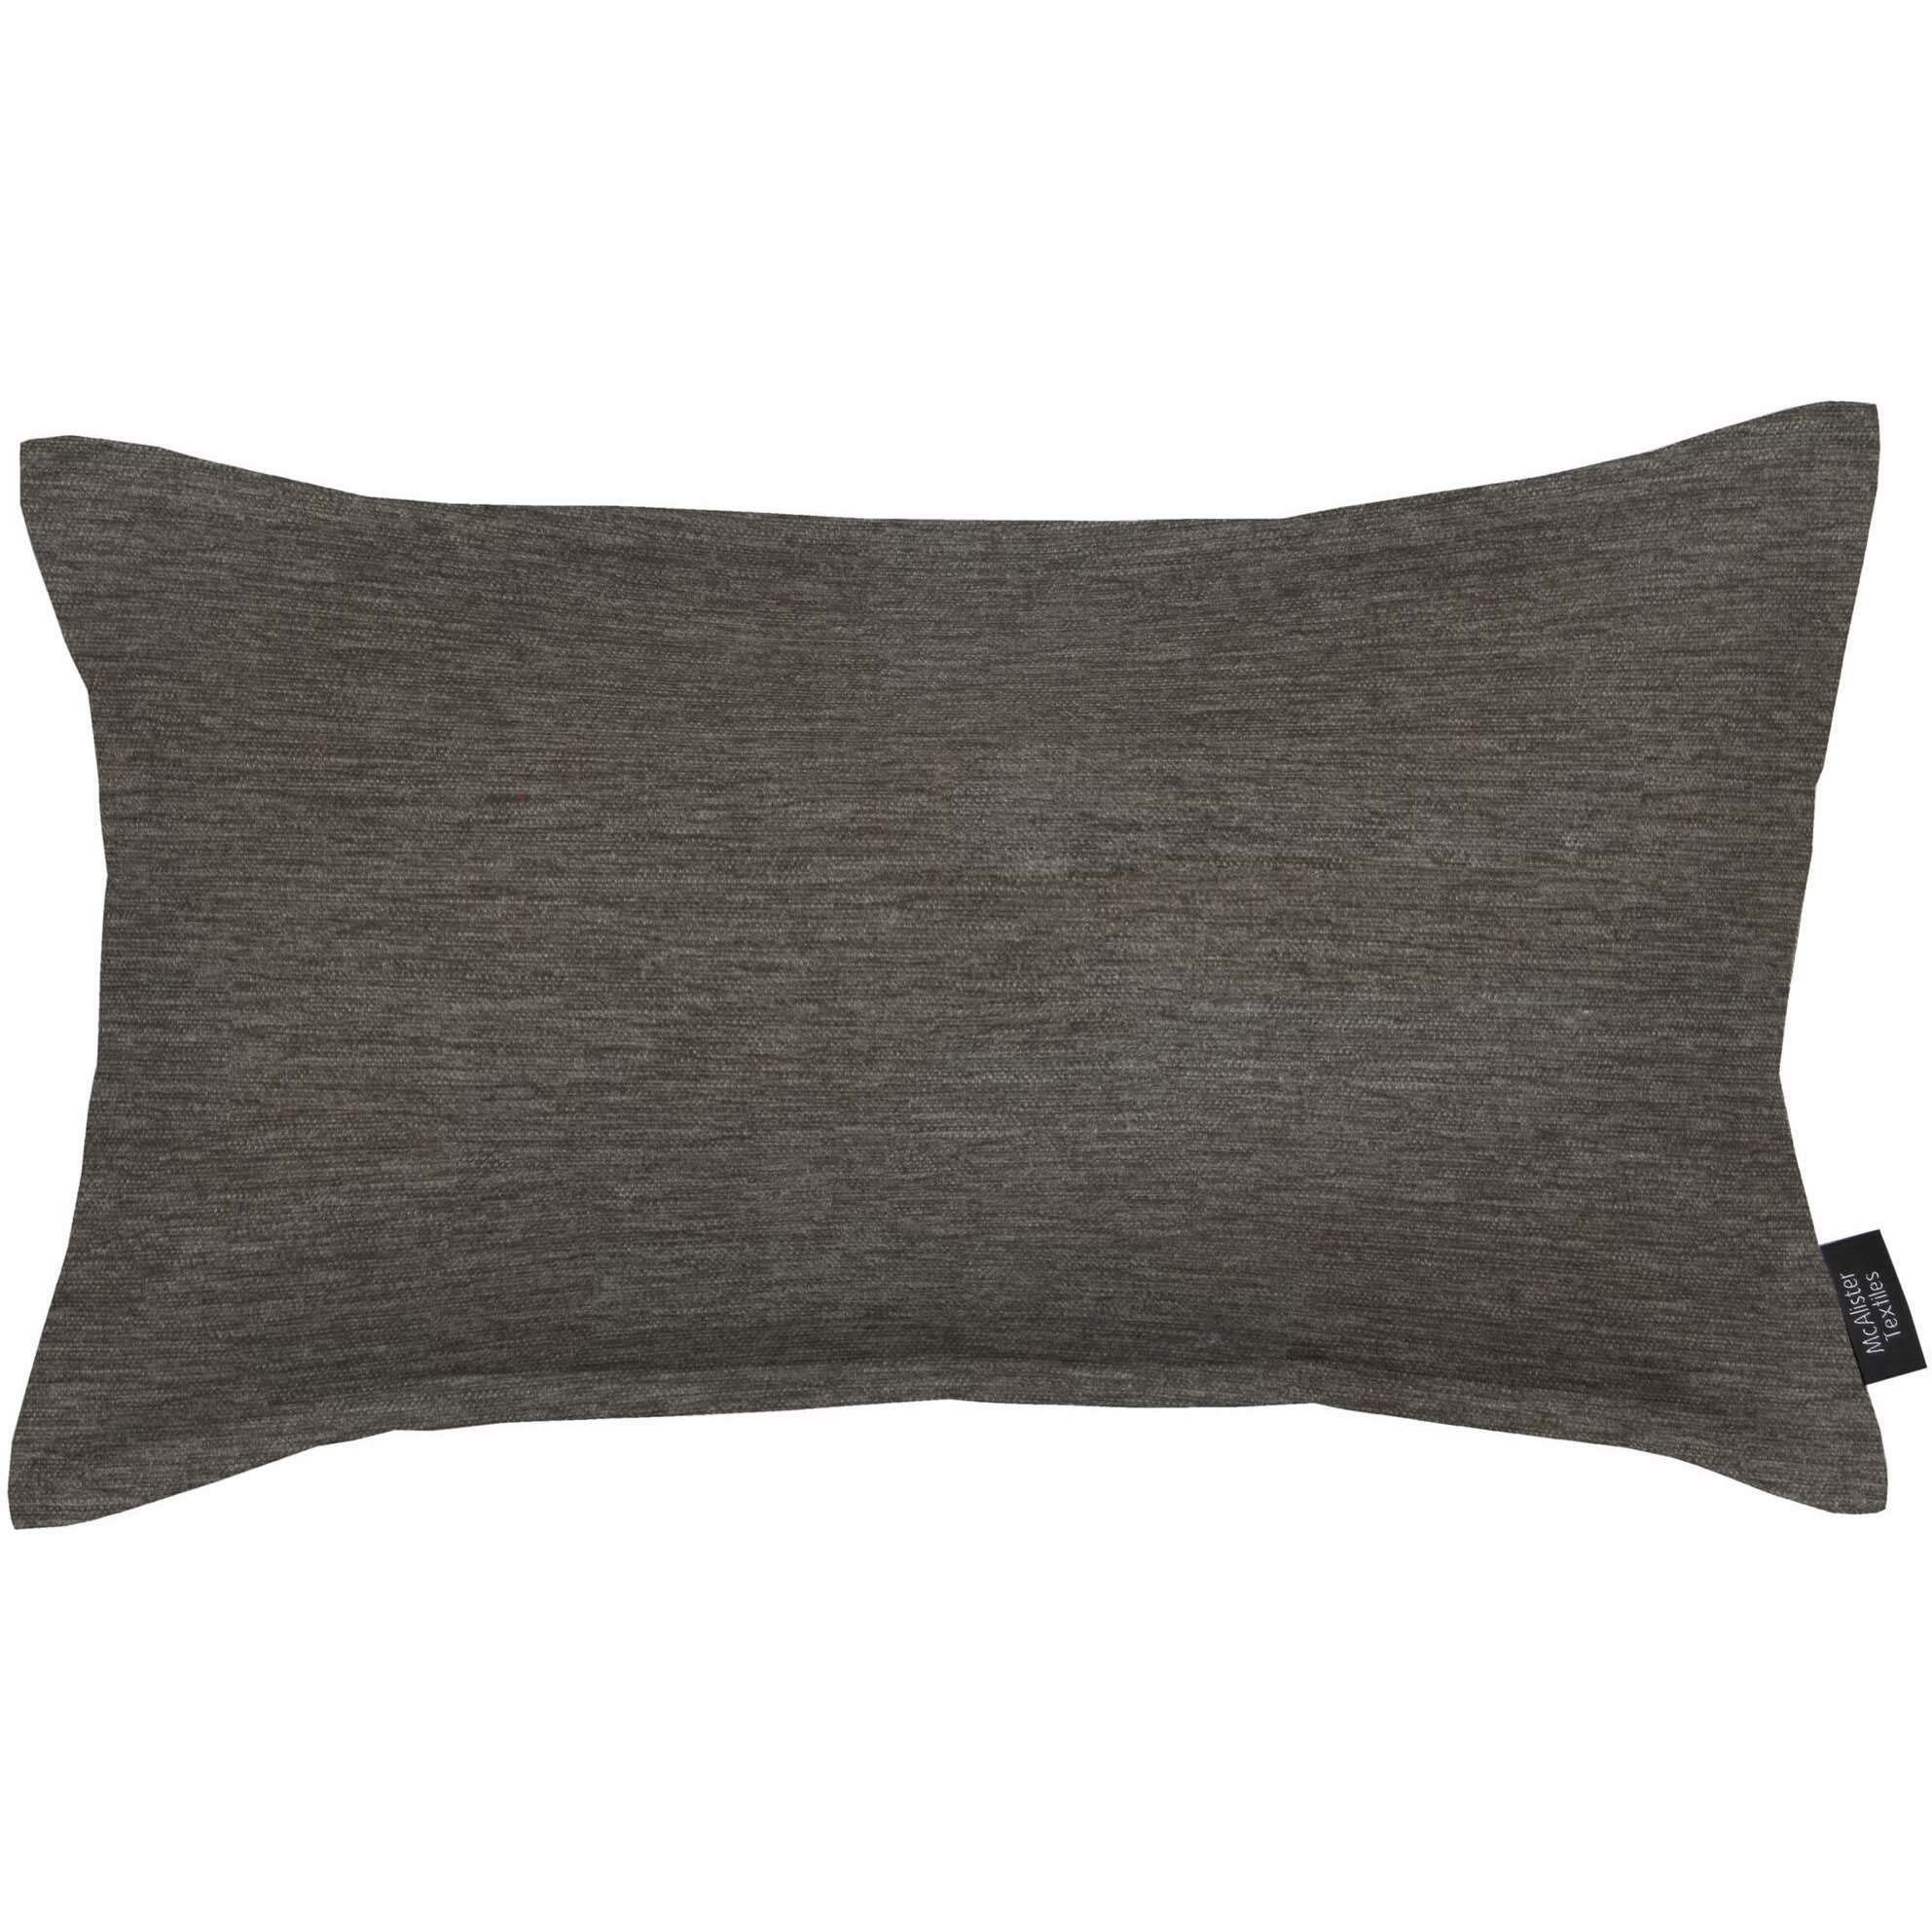 McAlister Textiles Plain Chenille Charcoal Grey Cushion Cushions and Covers Polyester Filler 60cm x 40cm